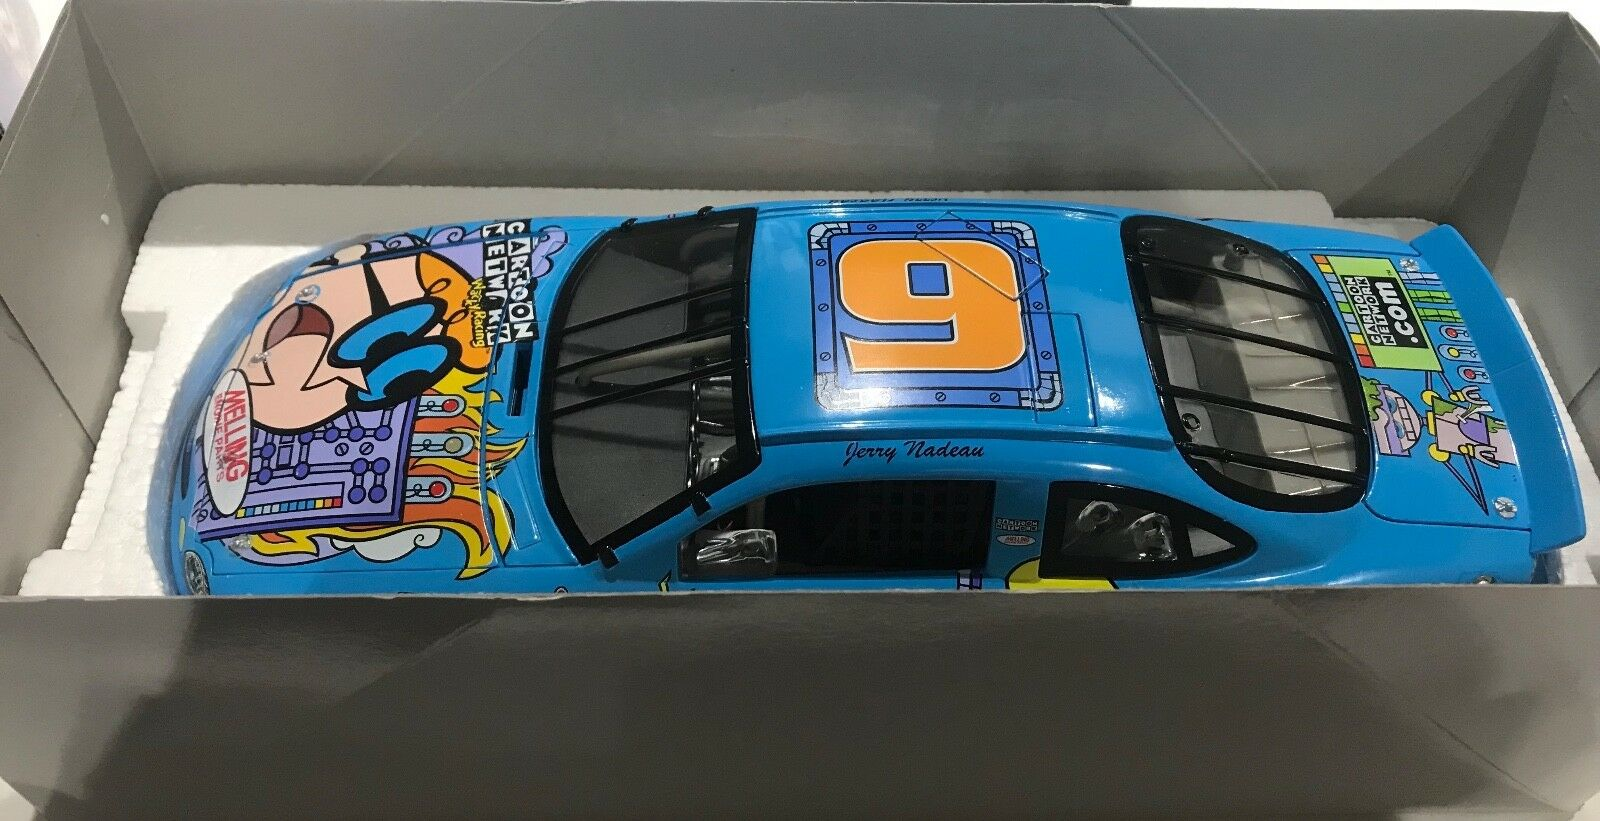 Action Racing Nascar Jerry Nadeau Cartoon Network Ford Taurus 1 18 Scale